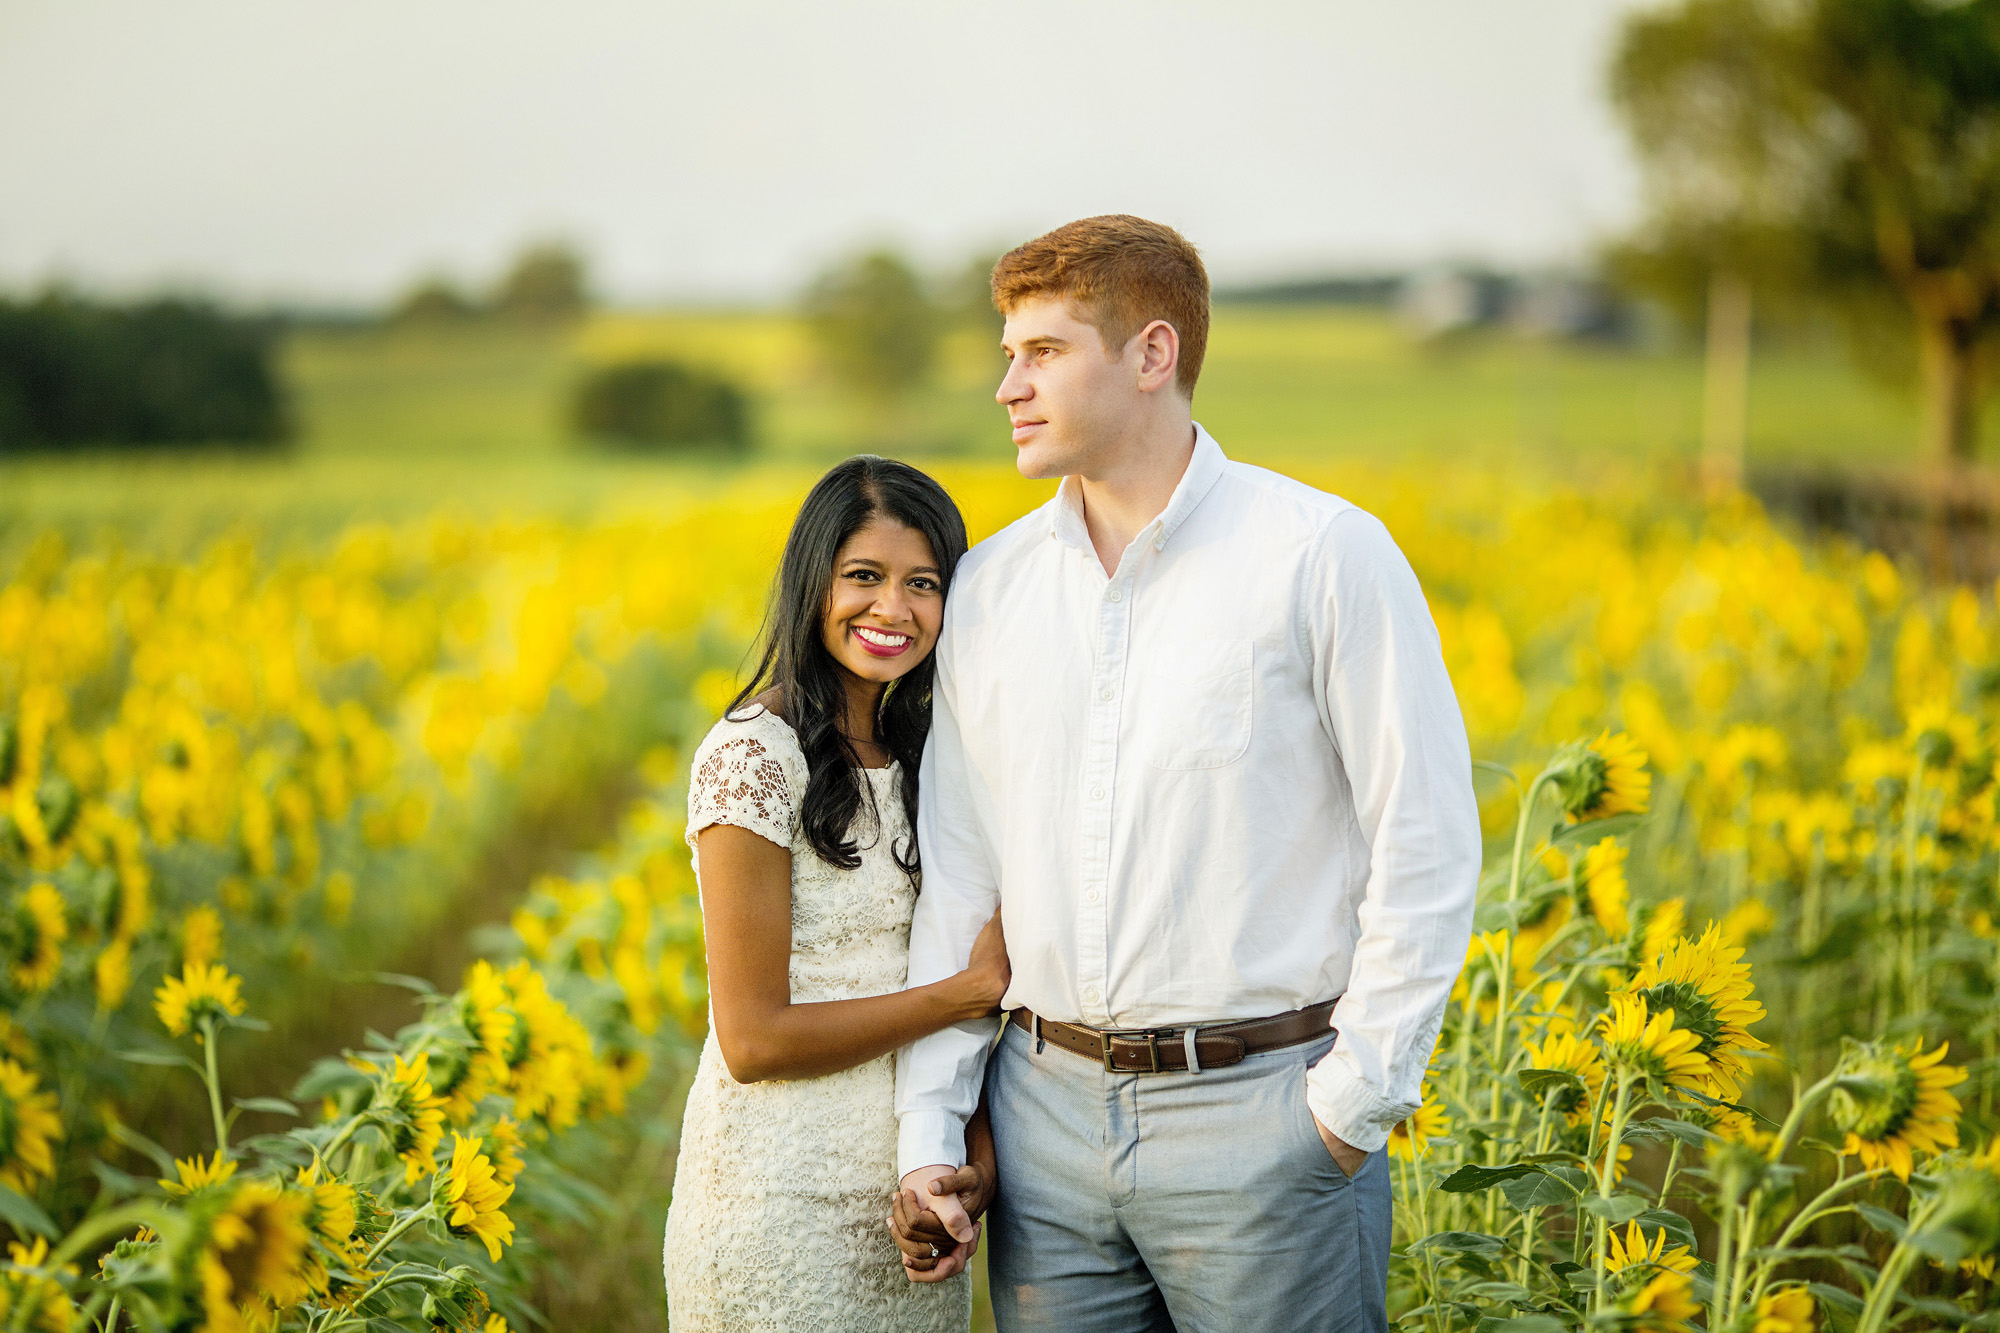 Seriously_Sabrina_Photography_Lexington_Midway_Kentucky_Engagement_Merefield_Sunflowers_Naz_and_Drew10.jpg